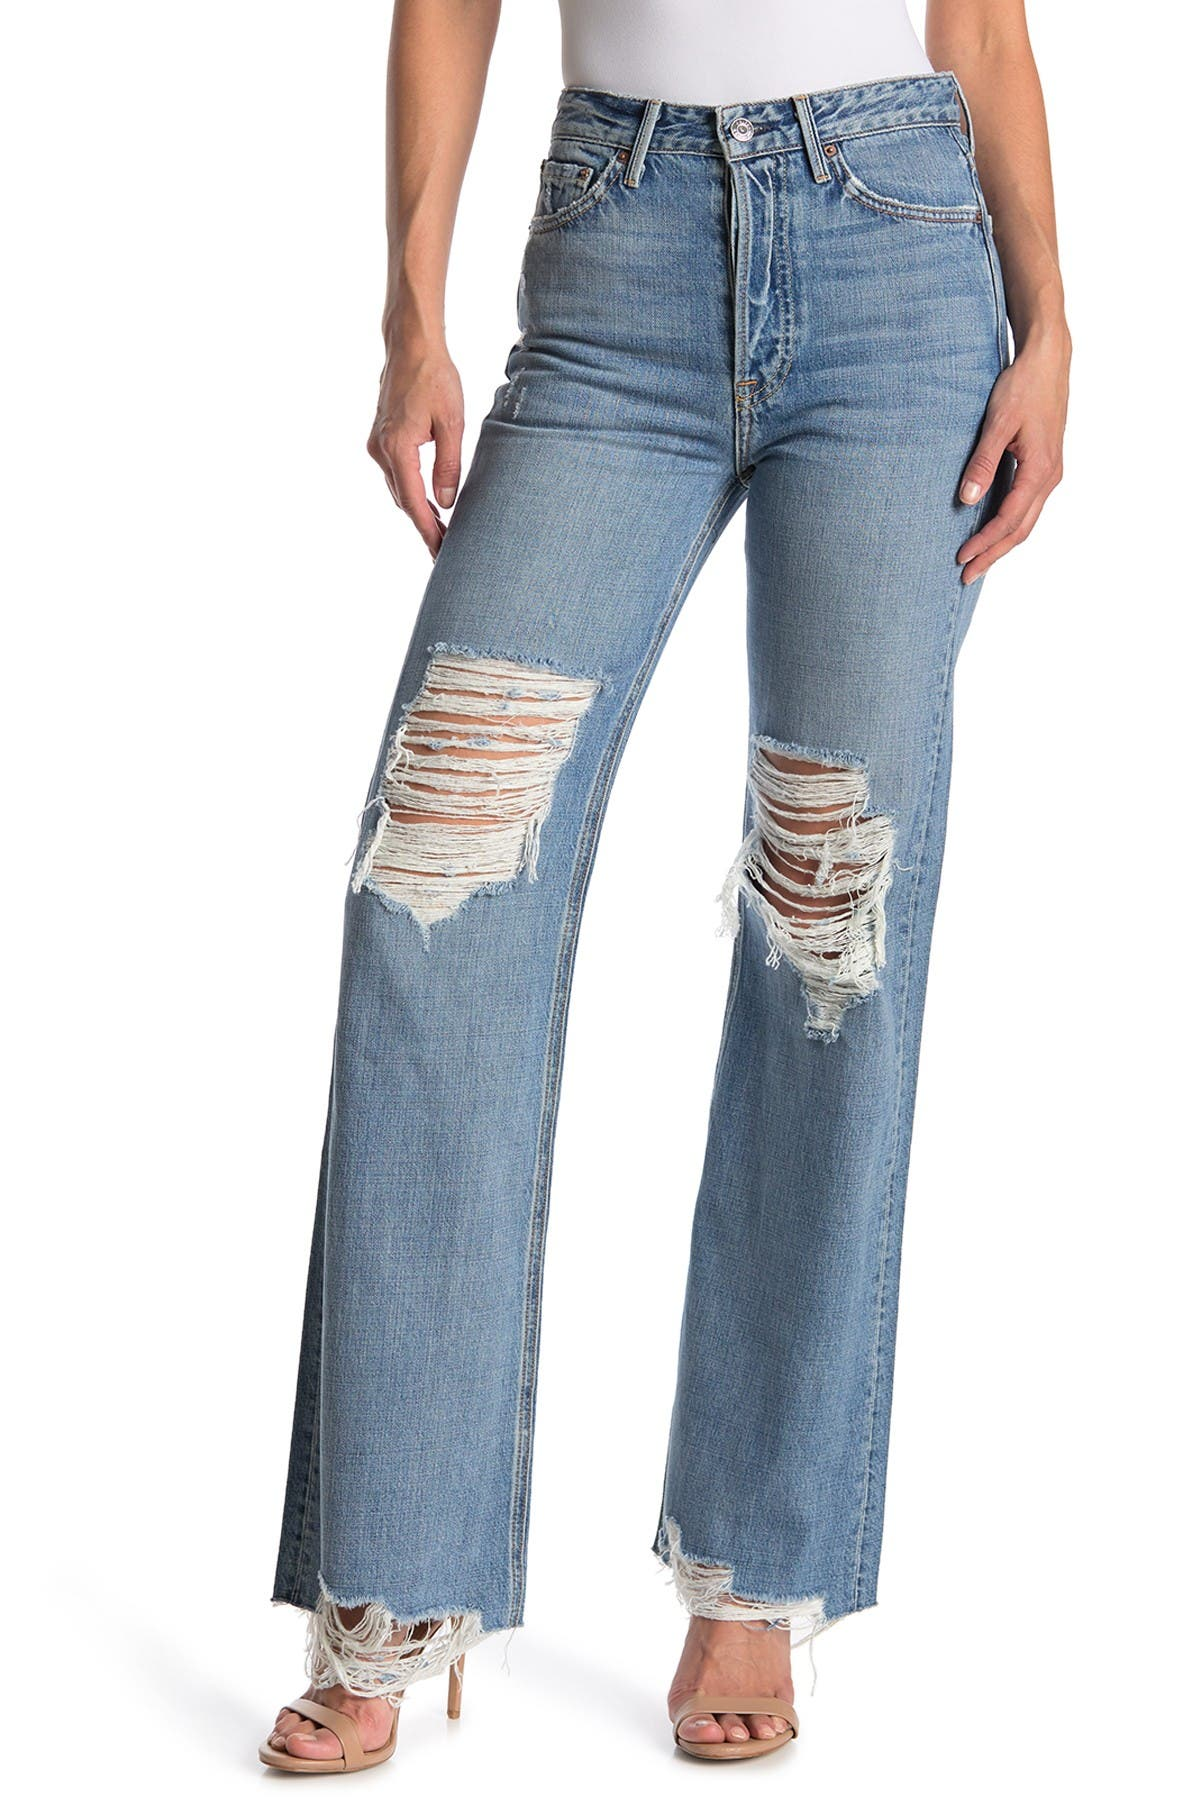 Image of GRLFRND Carla Distressed High Waist Wide Leg Jeans